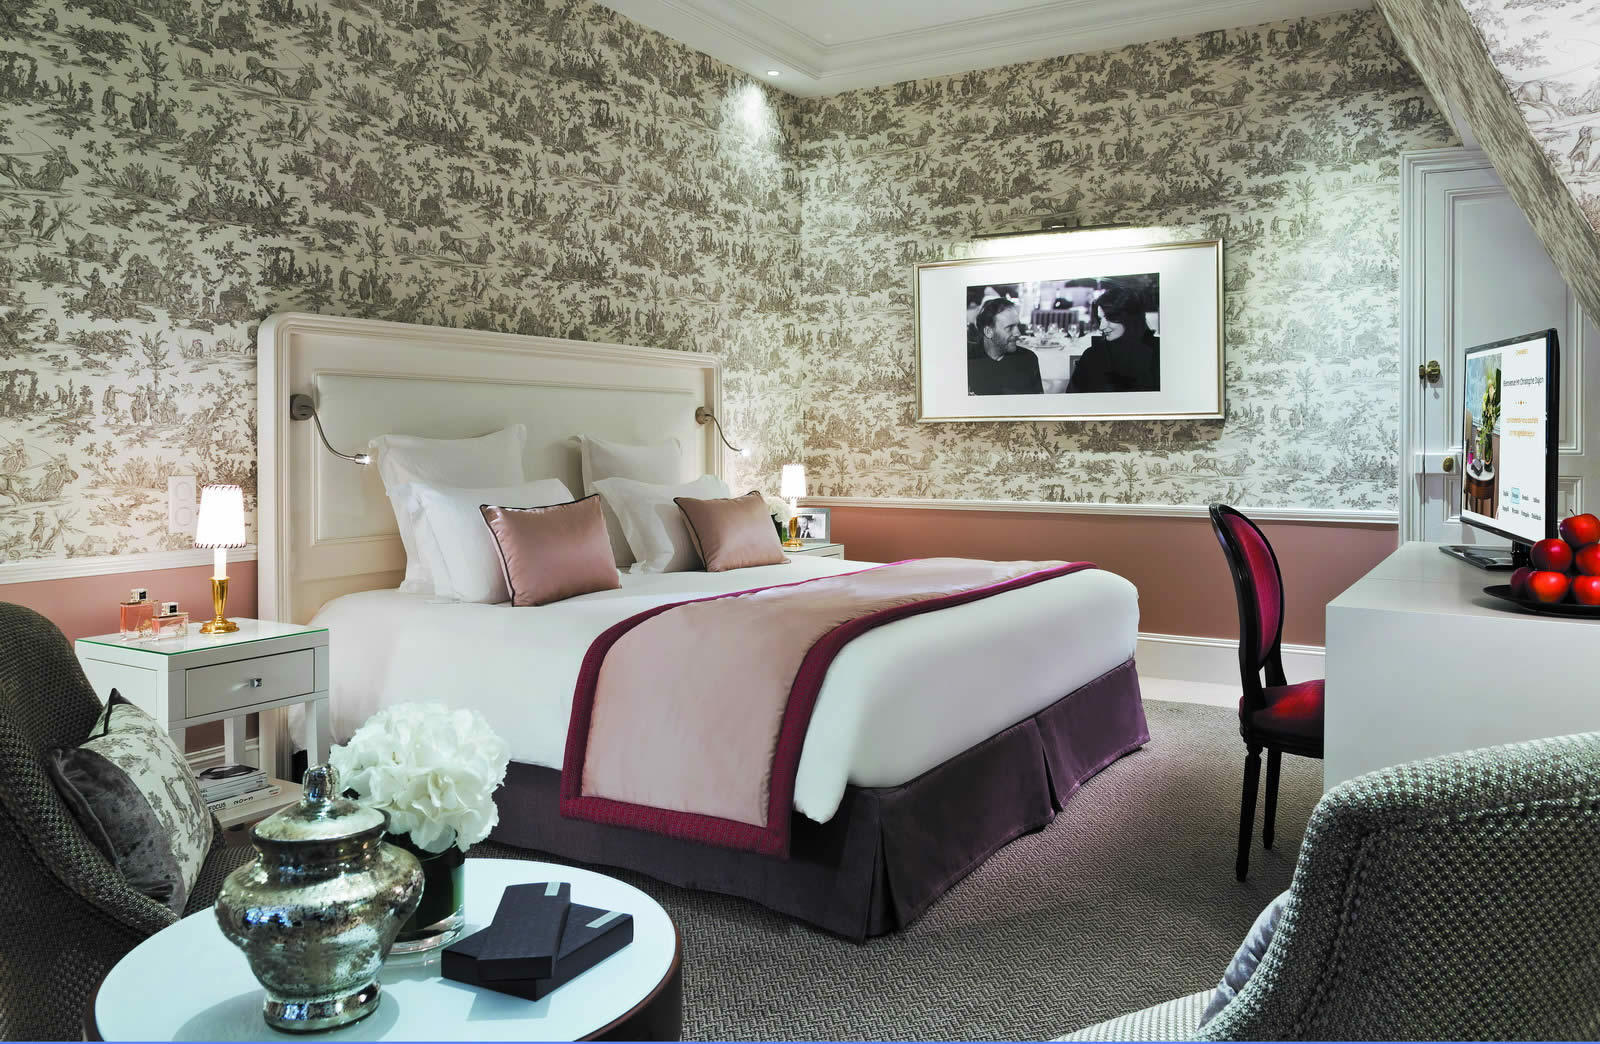 The Normandy Deauville: A Luxurious Hotel of Barrière's Group